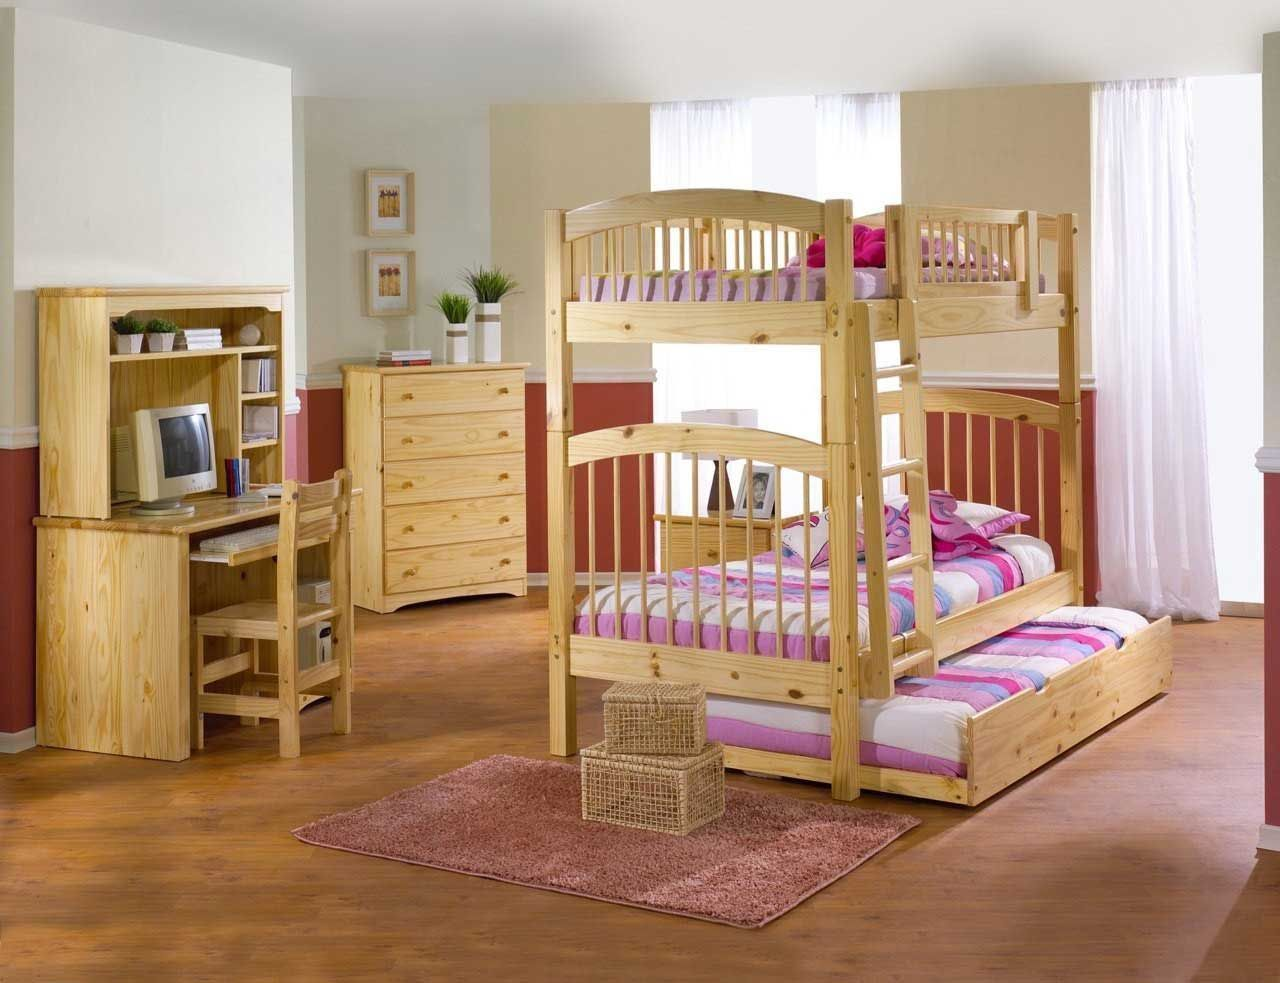 Under loft bed ideas  Cool Kids Bunk Bed Ideas For Boys And Girls Room  Natural Wood